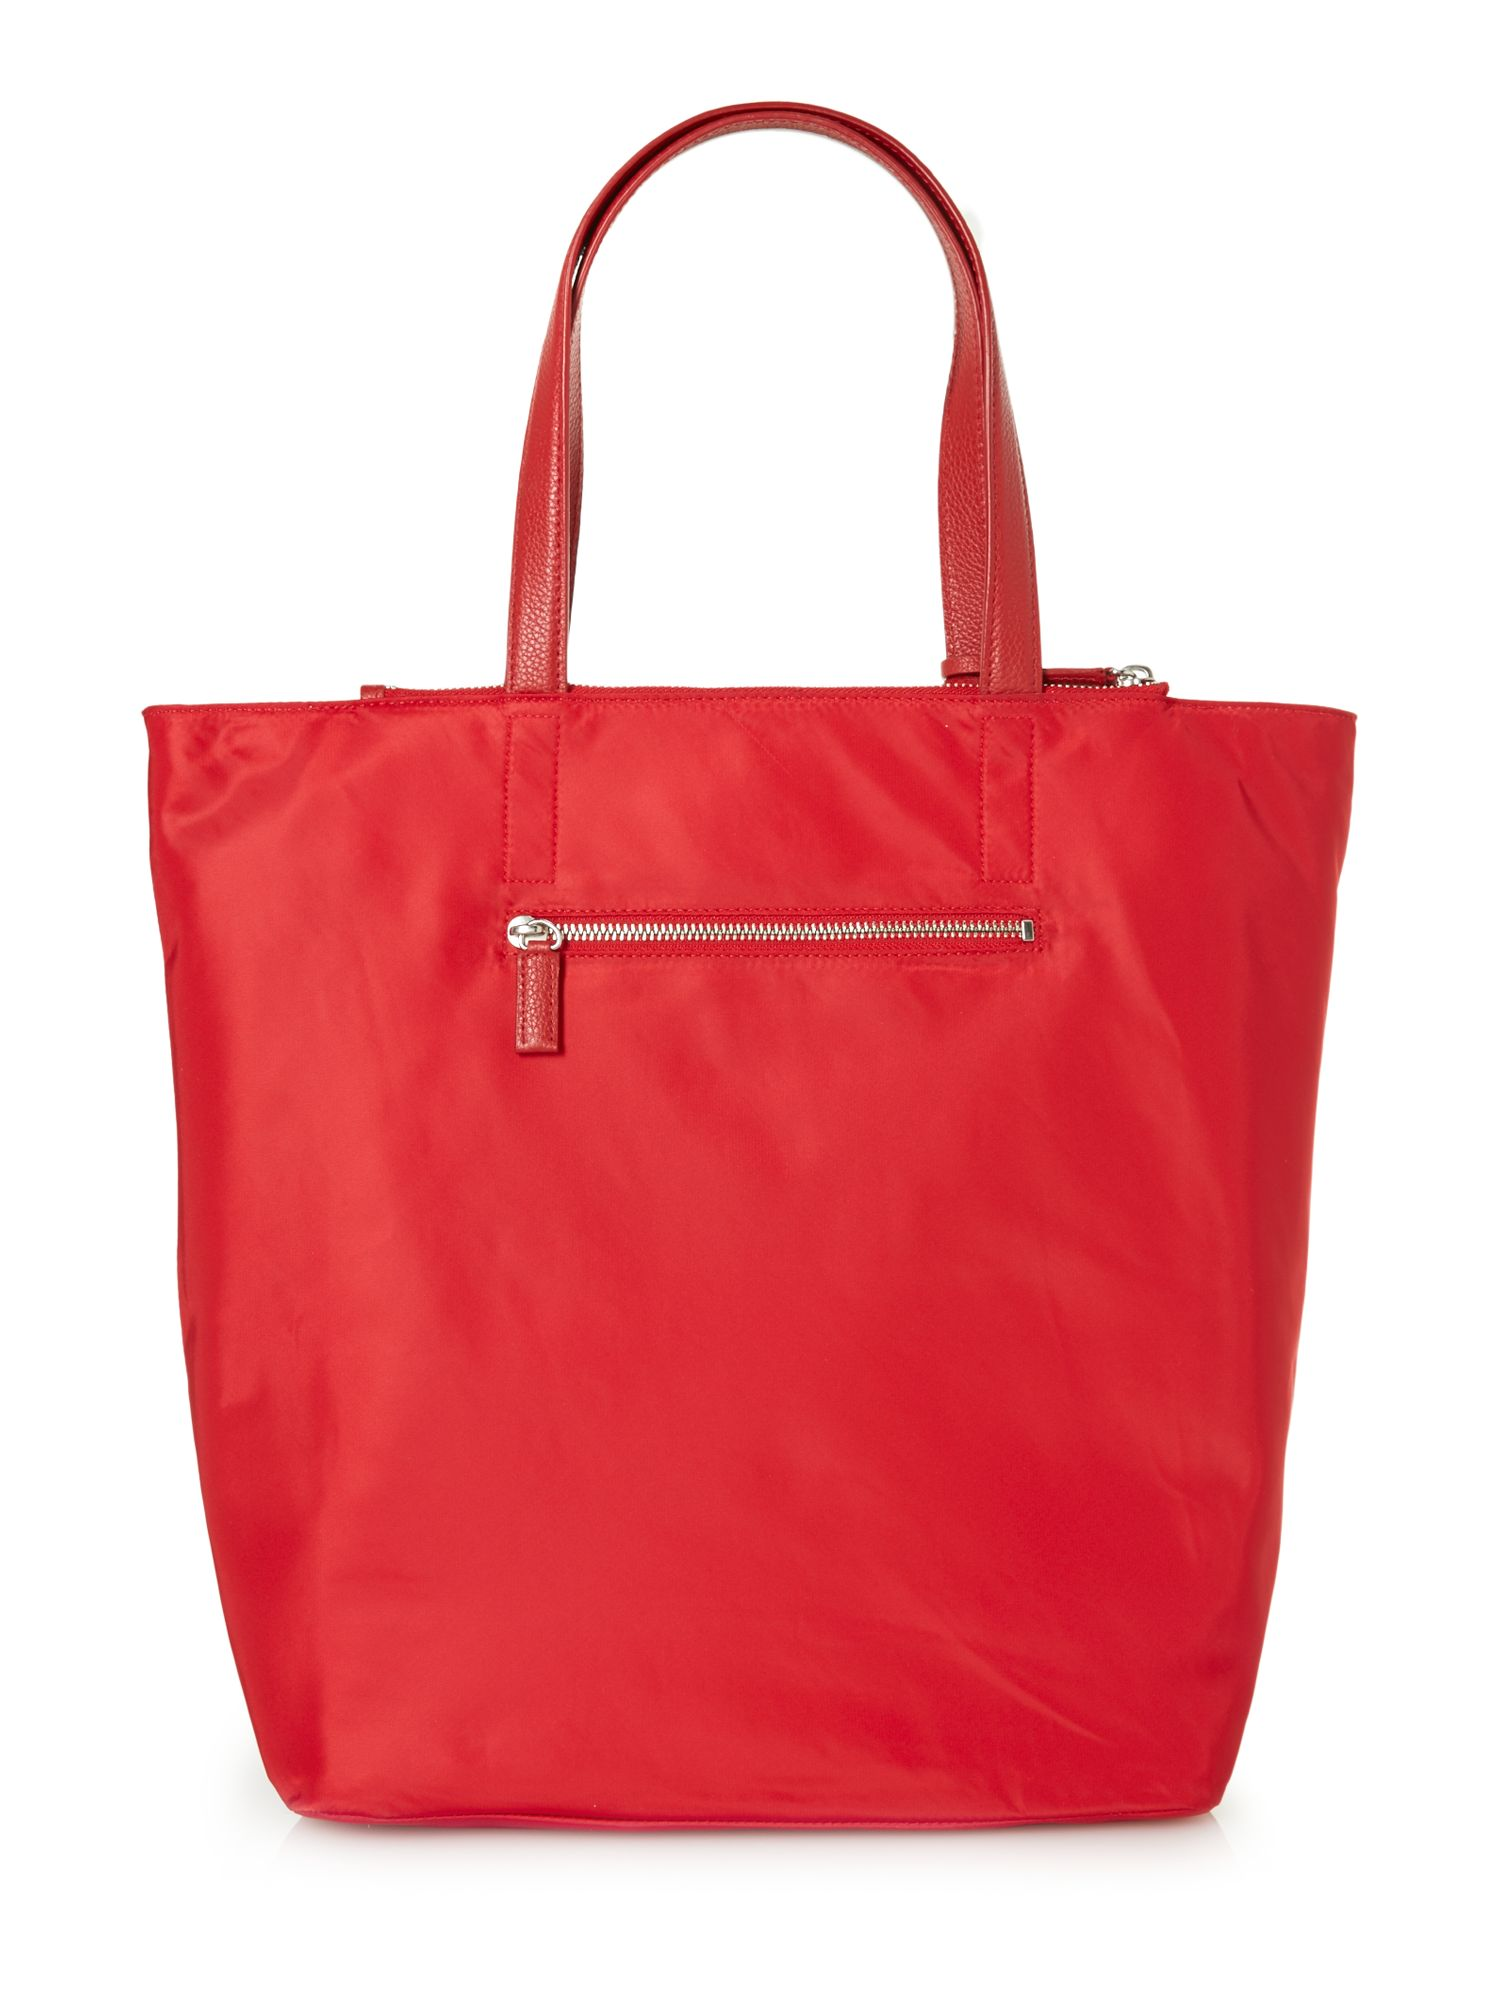 Nylon red large tassel tote bag